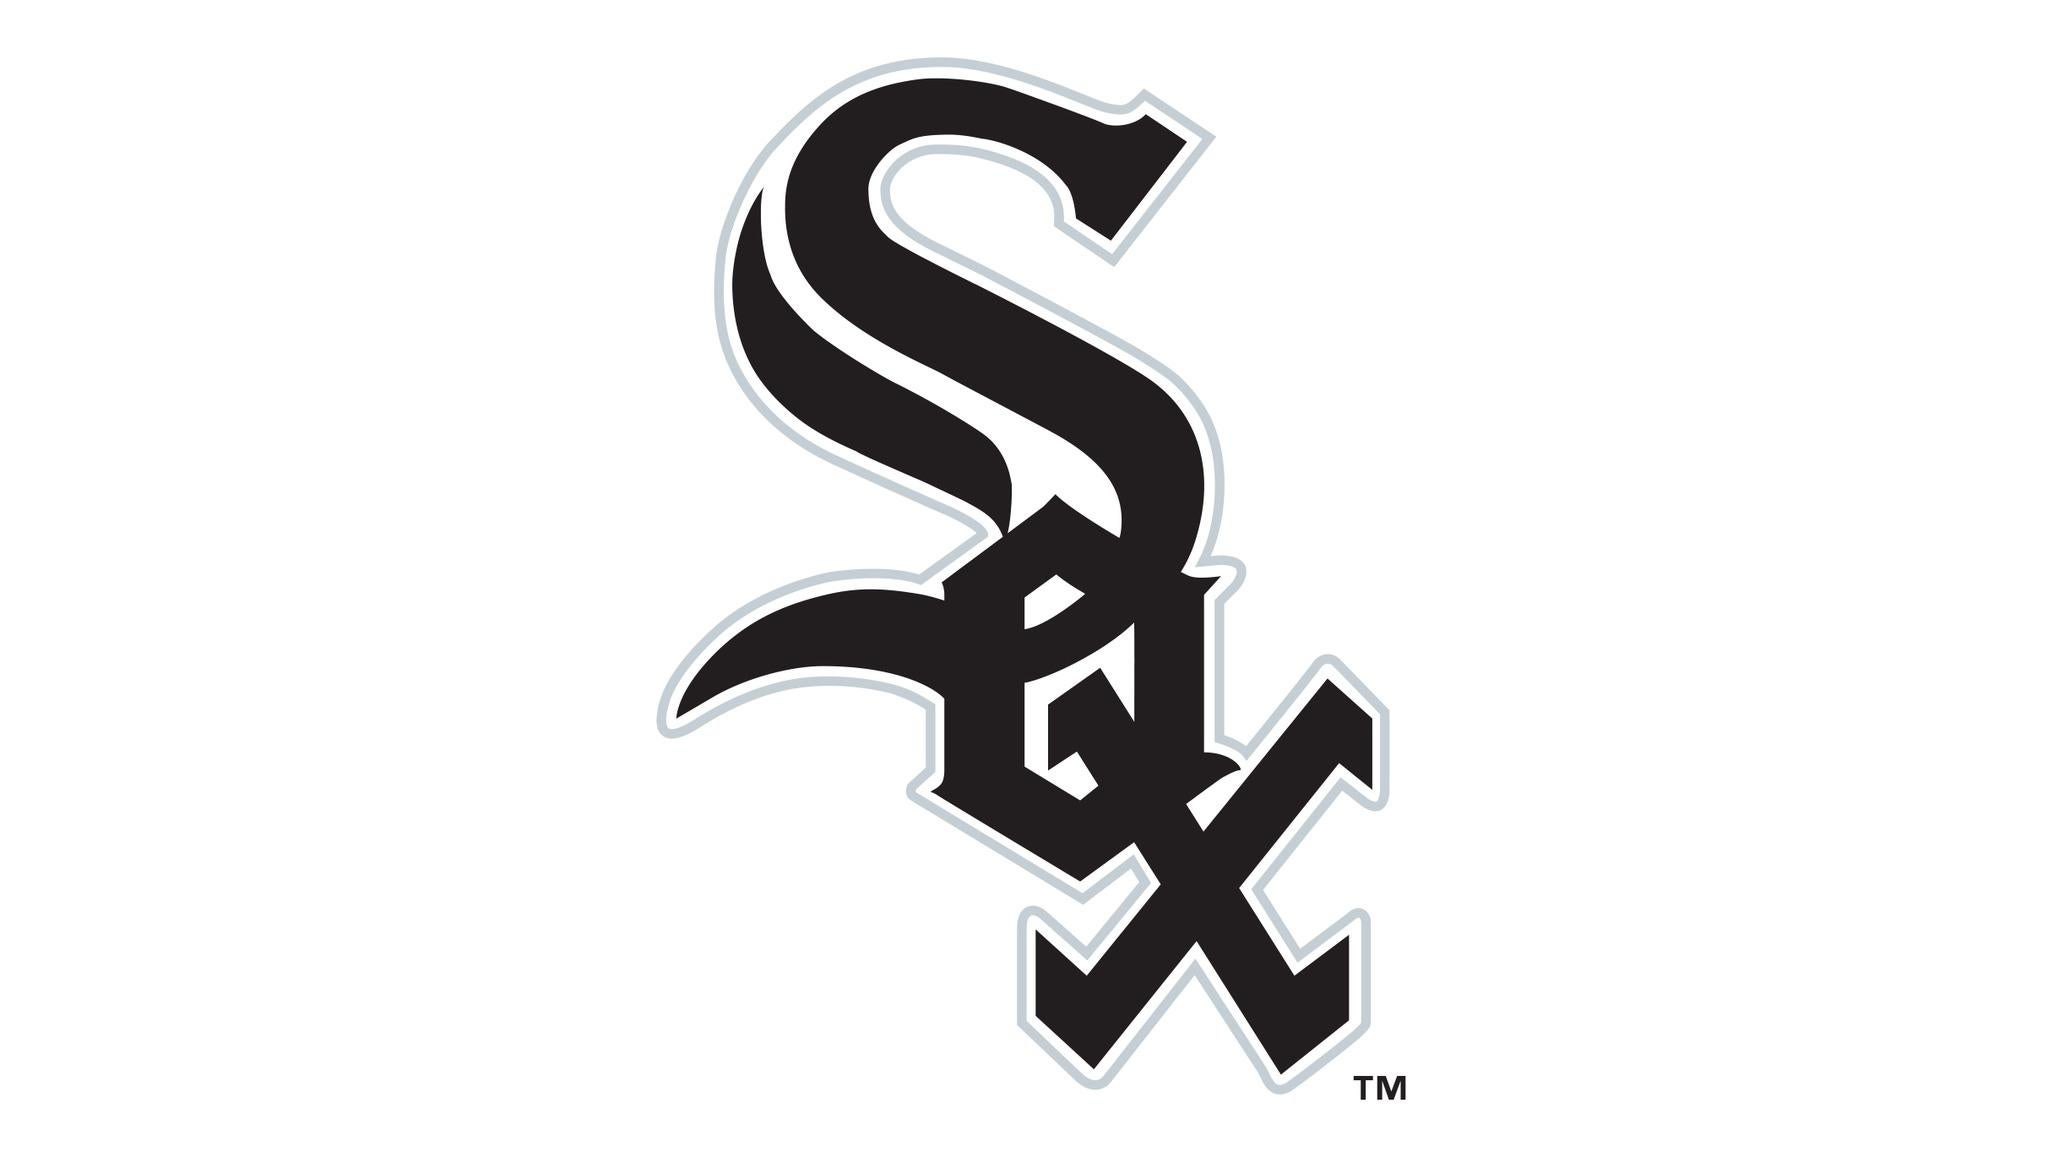 Chicago White Sox v Detroit Tigers at U.S. Cellular Field